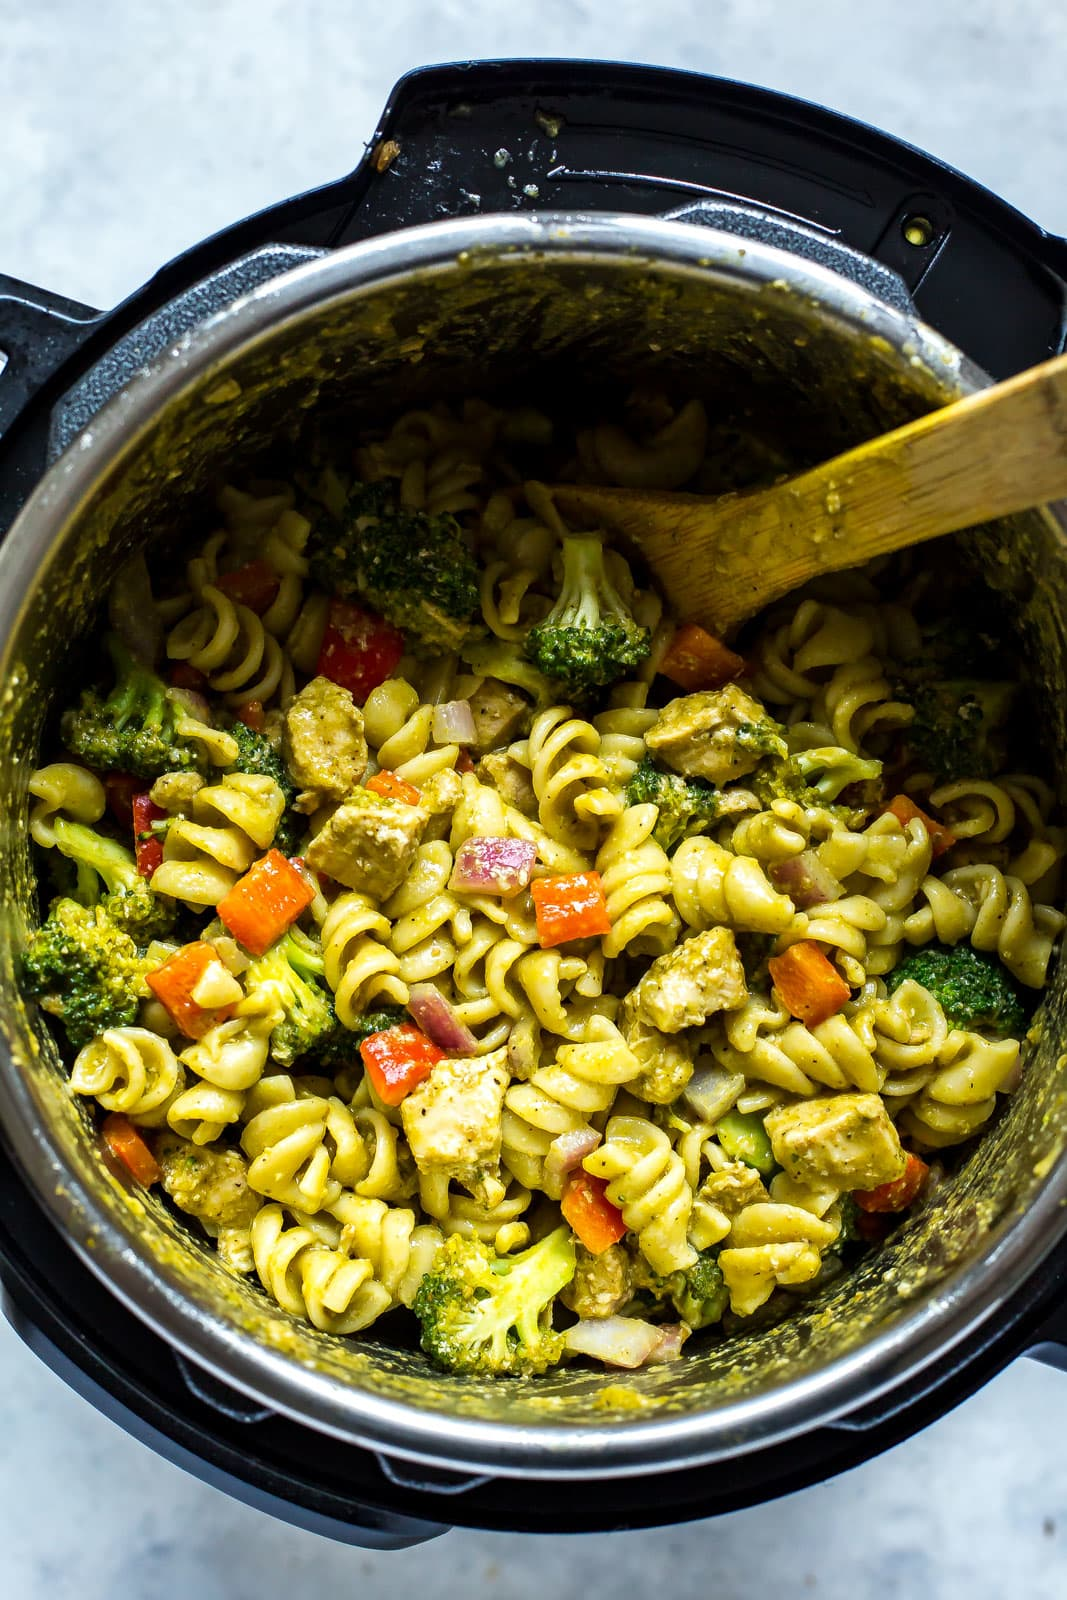 This Easy Chicken Pesto Pasta Is an Instant Pot Favorite